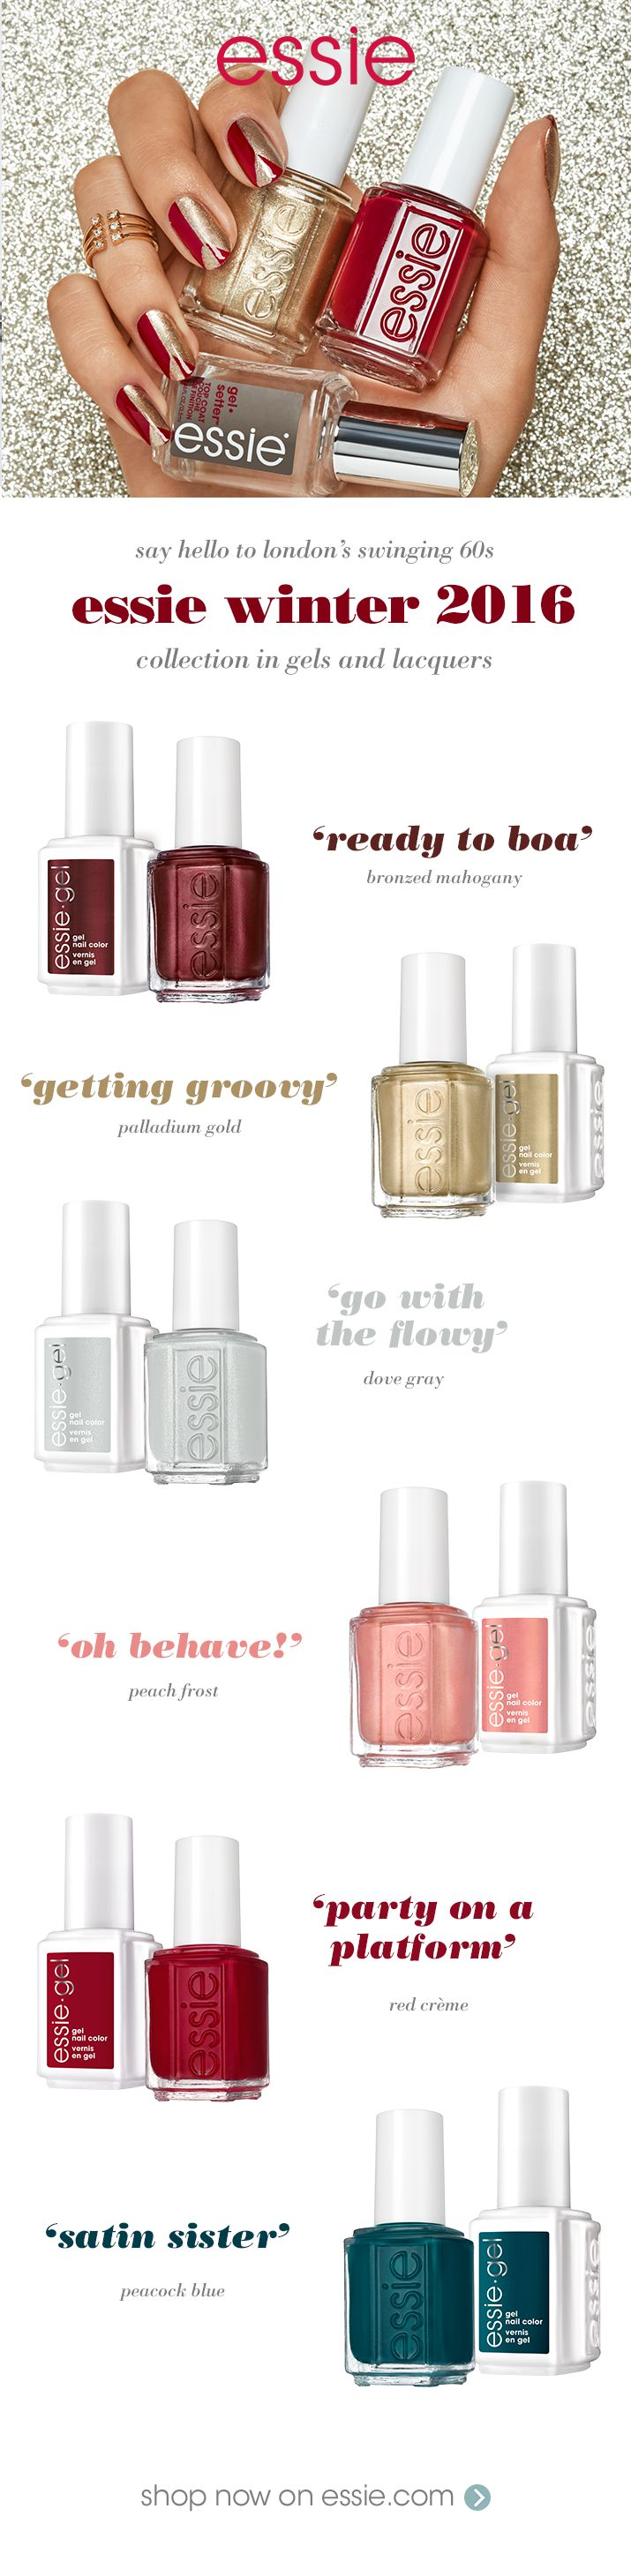 Say hello to London's swinging 60's -- introducing the essie winter 2016 collection in gels and lacquers. Get 'ready to boa' in bronzed mahogany, and 'go with the flowy' in dove gray. 'party on a platform' in red creme with and your peacock blue 'satin sister'. This are 'getting groovy' in palladium gold but 'oh behave!' in peach frost.